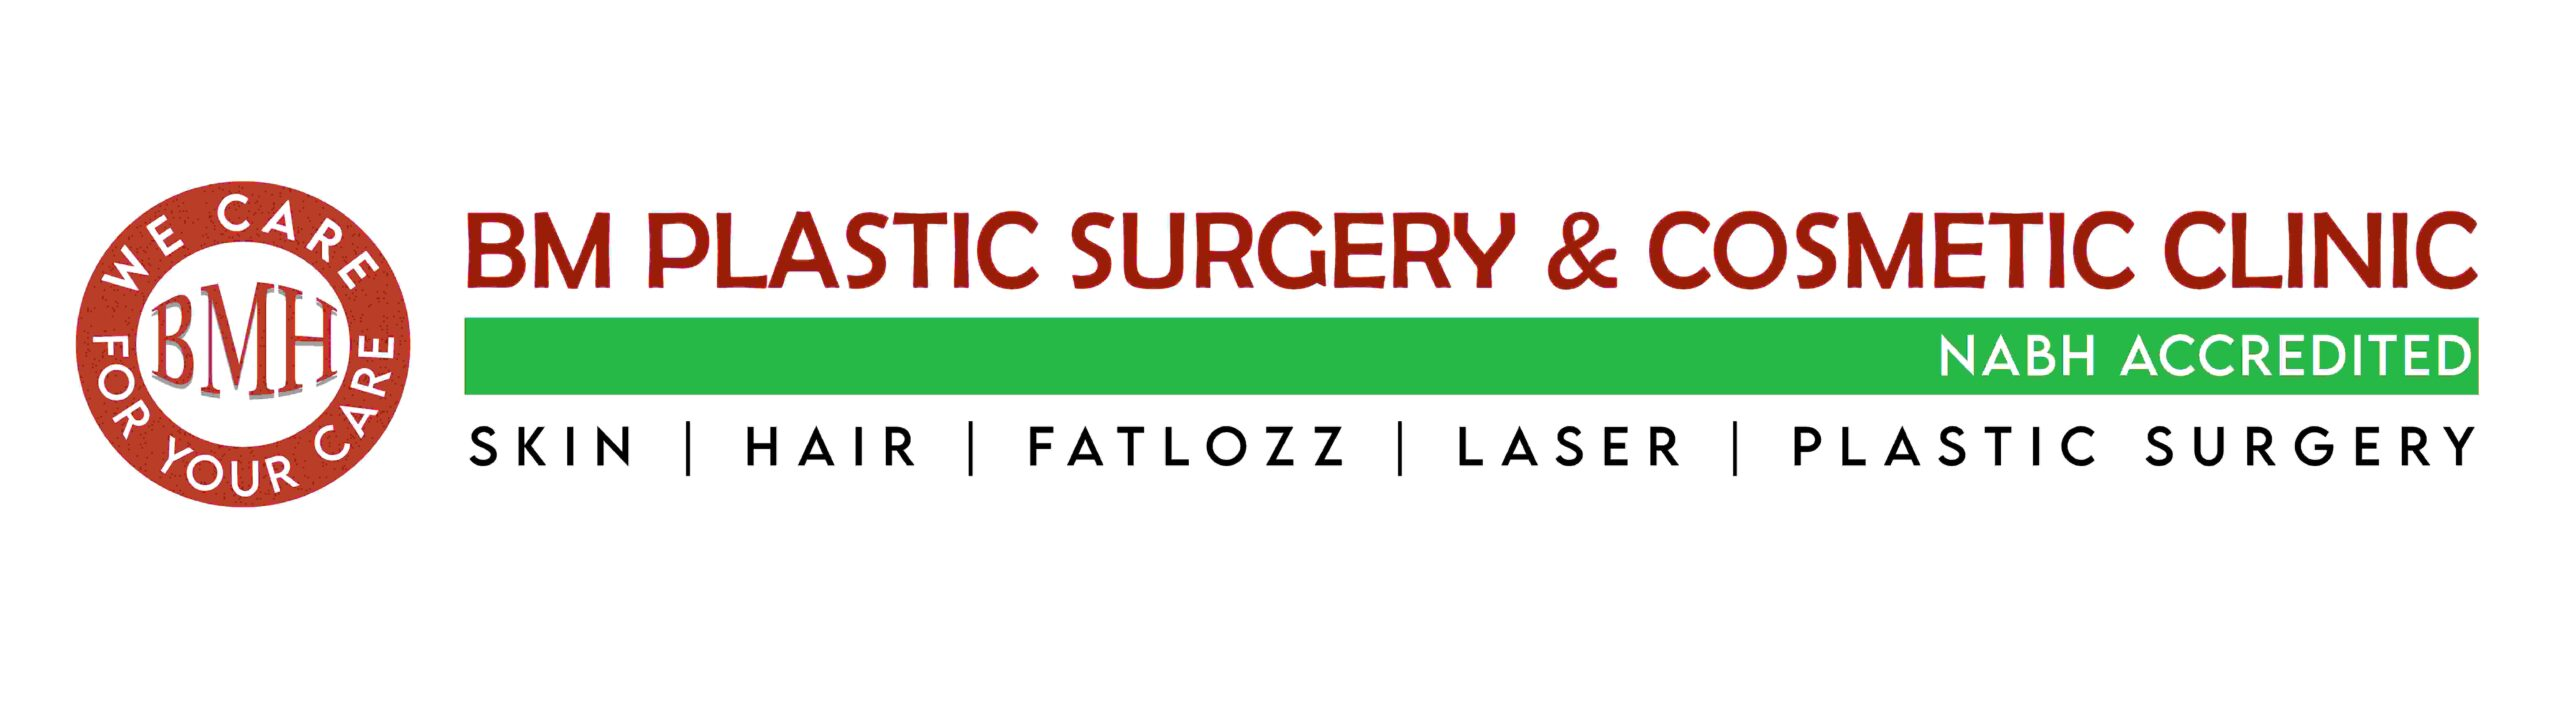 best multispeciality clinic in chennai | plastic surgery in chennai